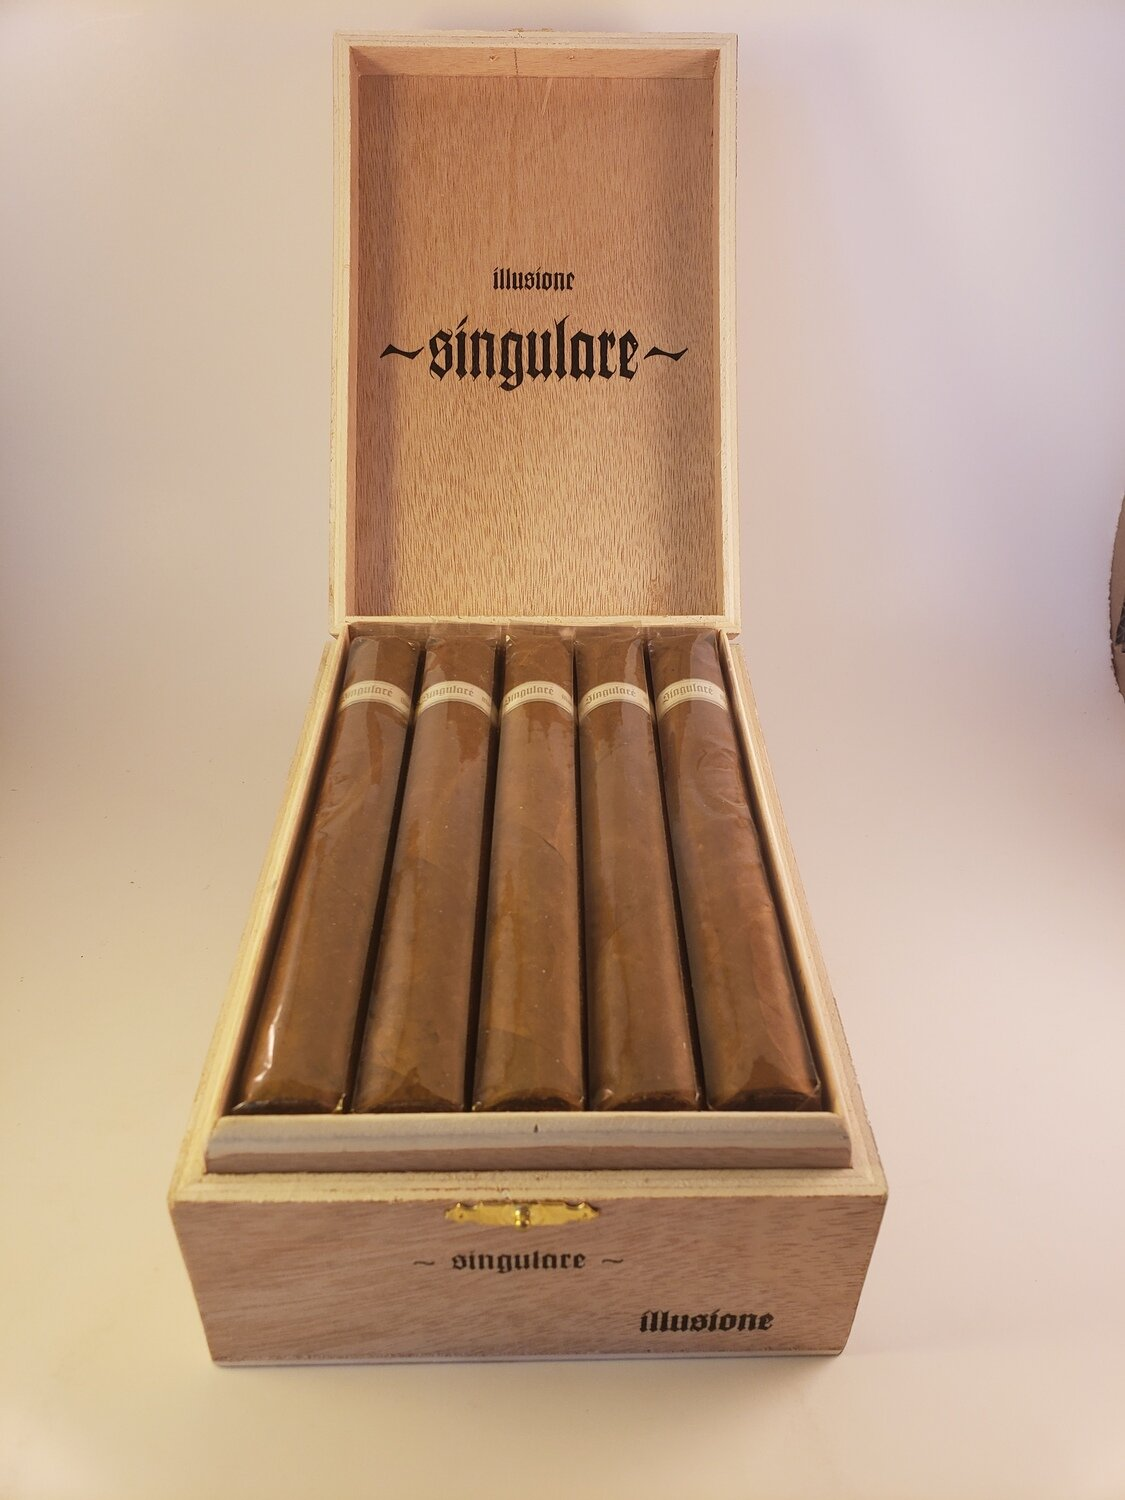 Illusione Singulare Turin 6 1/4 x 52 Single Cigar